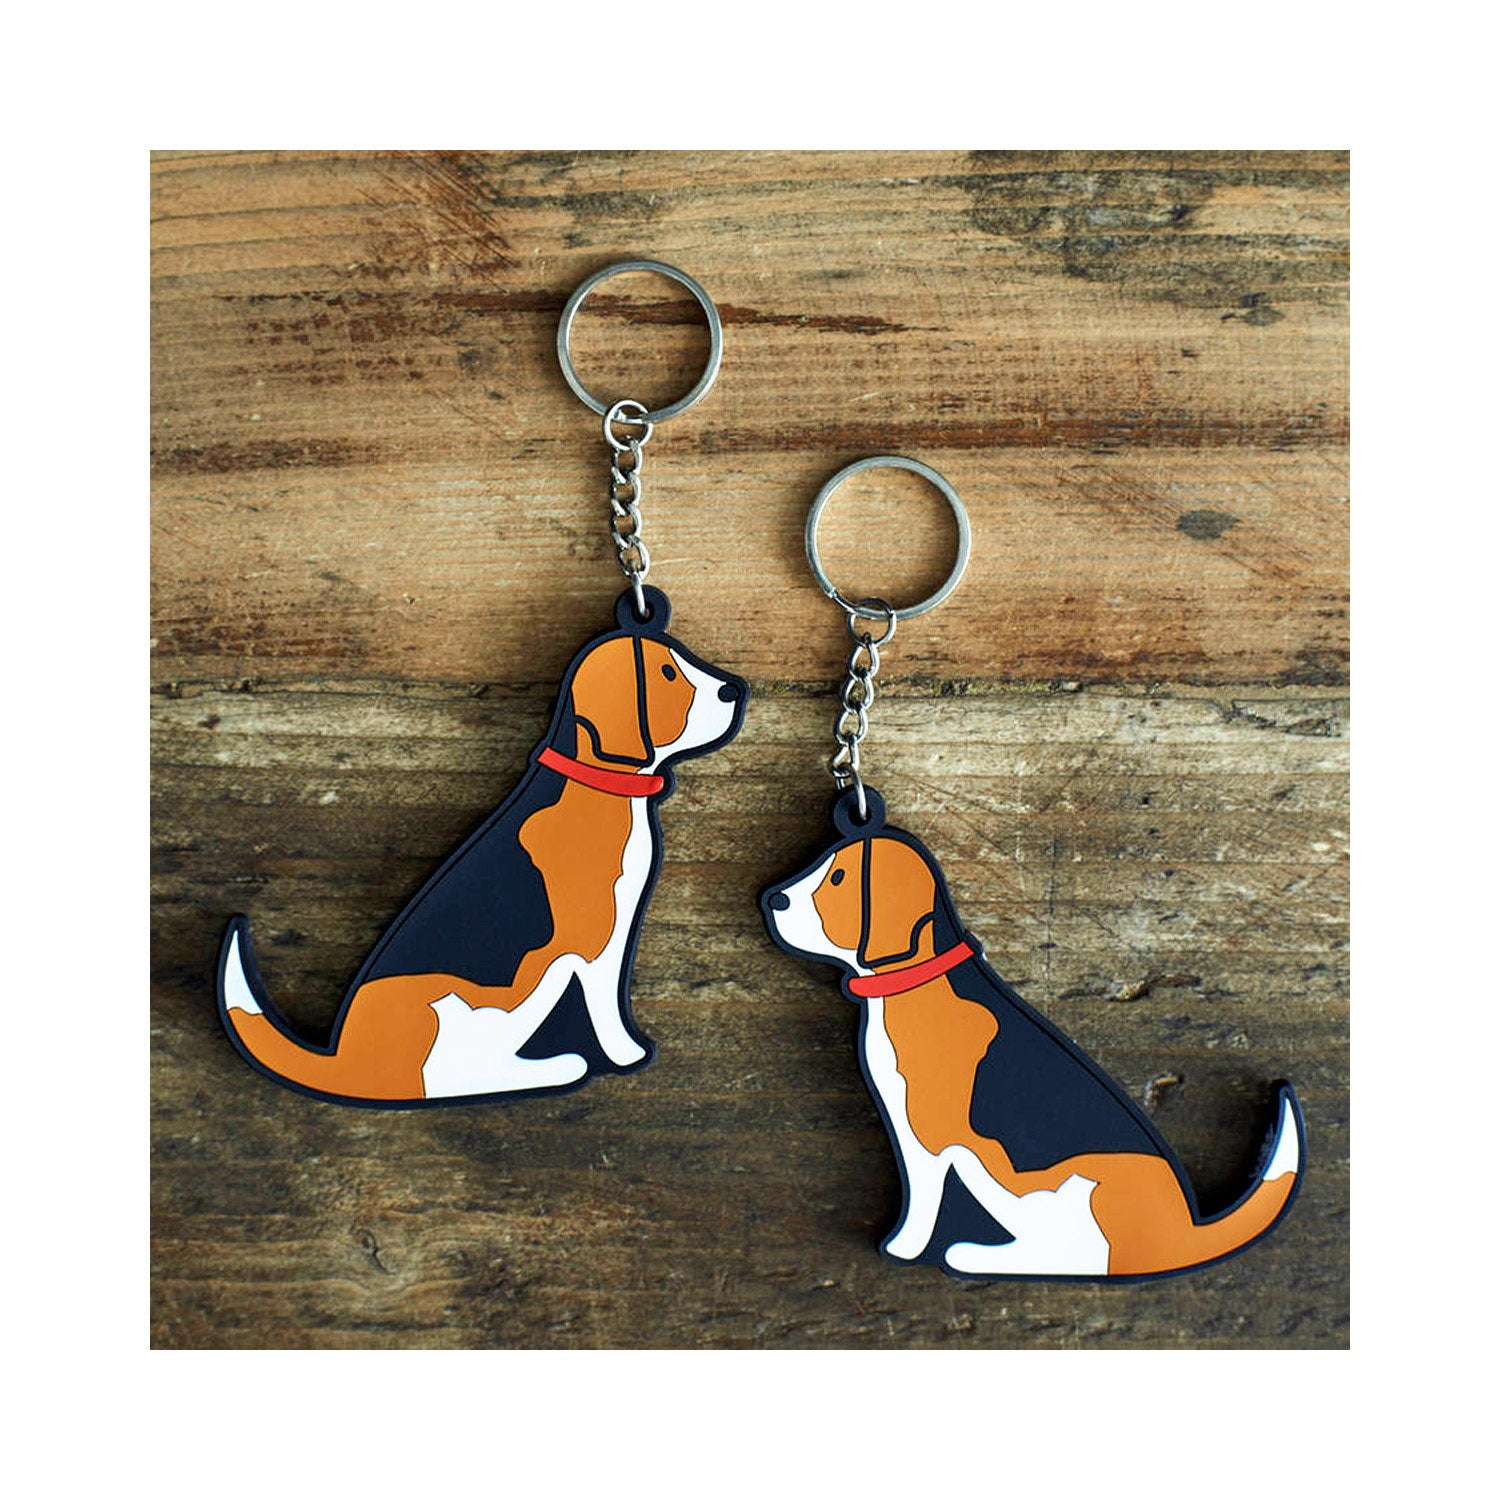 Dog Lover Gifts available at DogKrazyGifts - Rupert The Beagle Keyring - part of the Sweet William range available from Dog Krazy Gifts